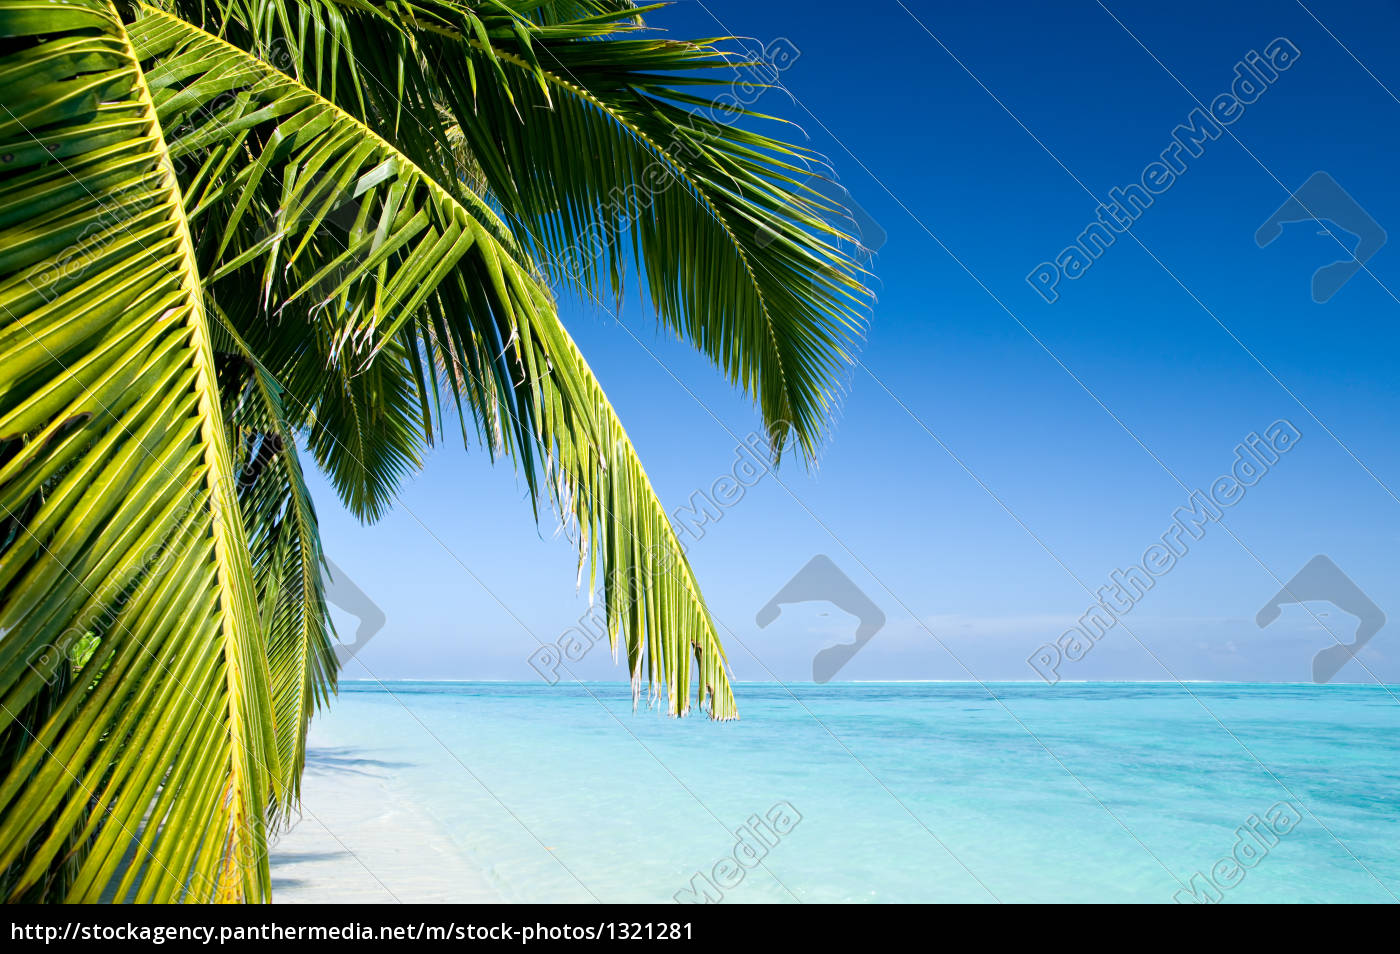 beach, with, palm, trees - 1321281